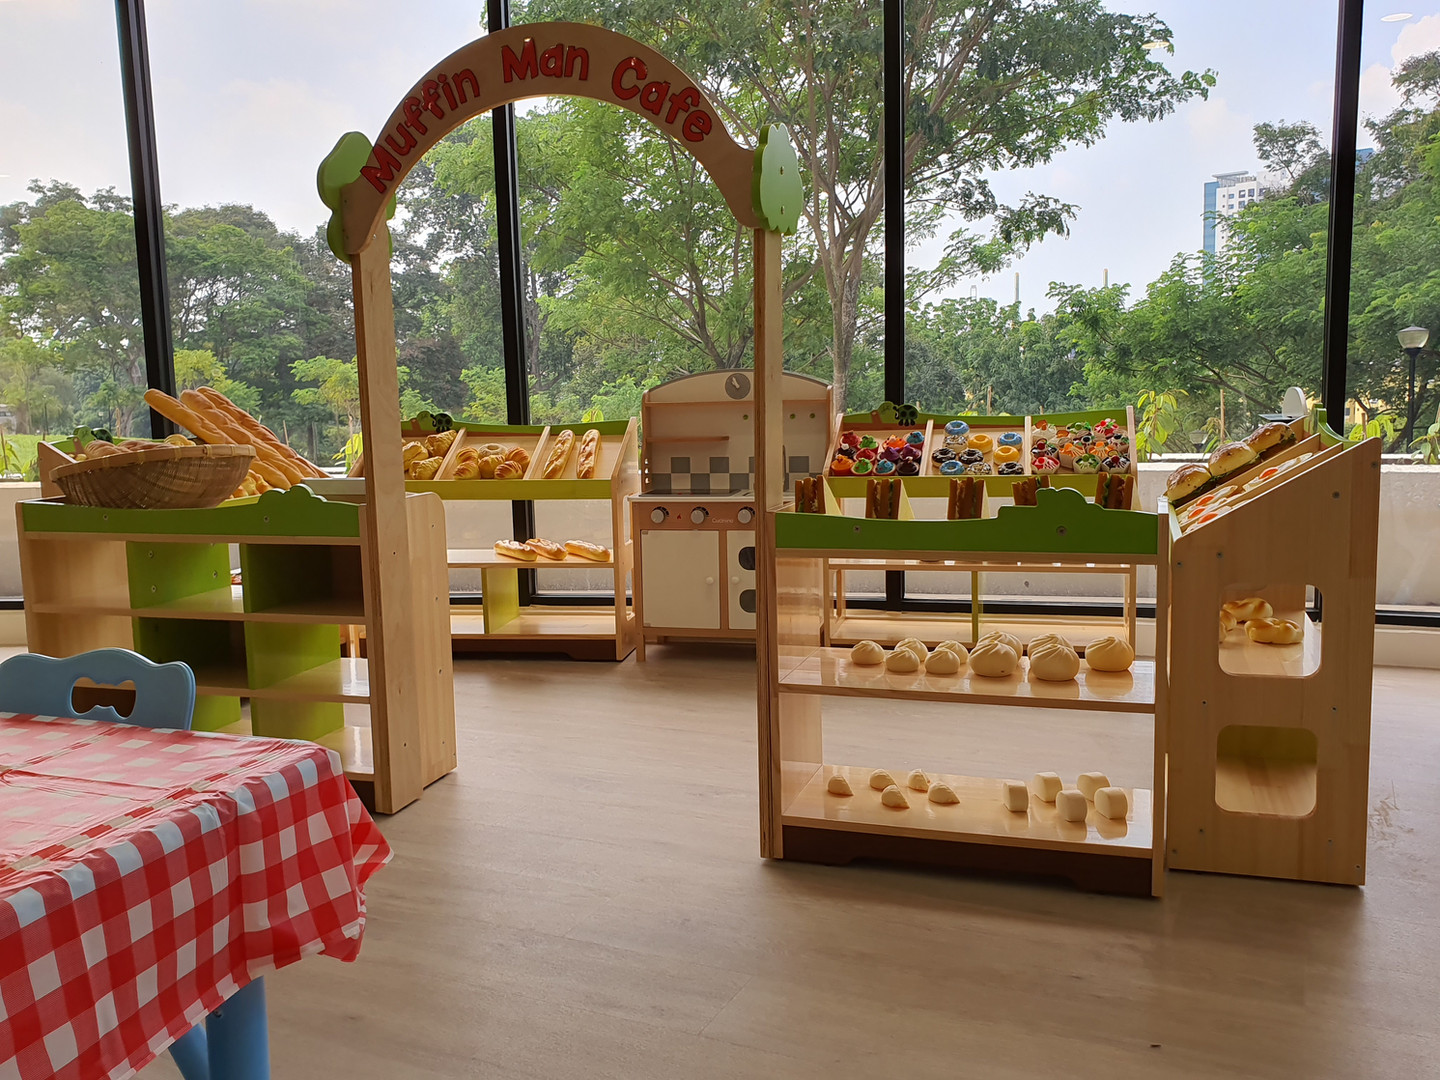 Chatsworth Preschool @ Clementi Woods